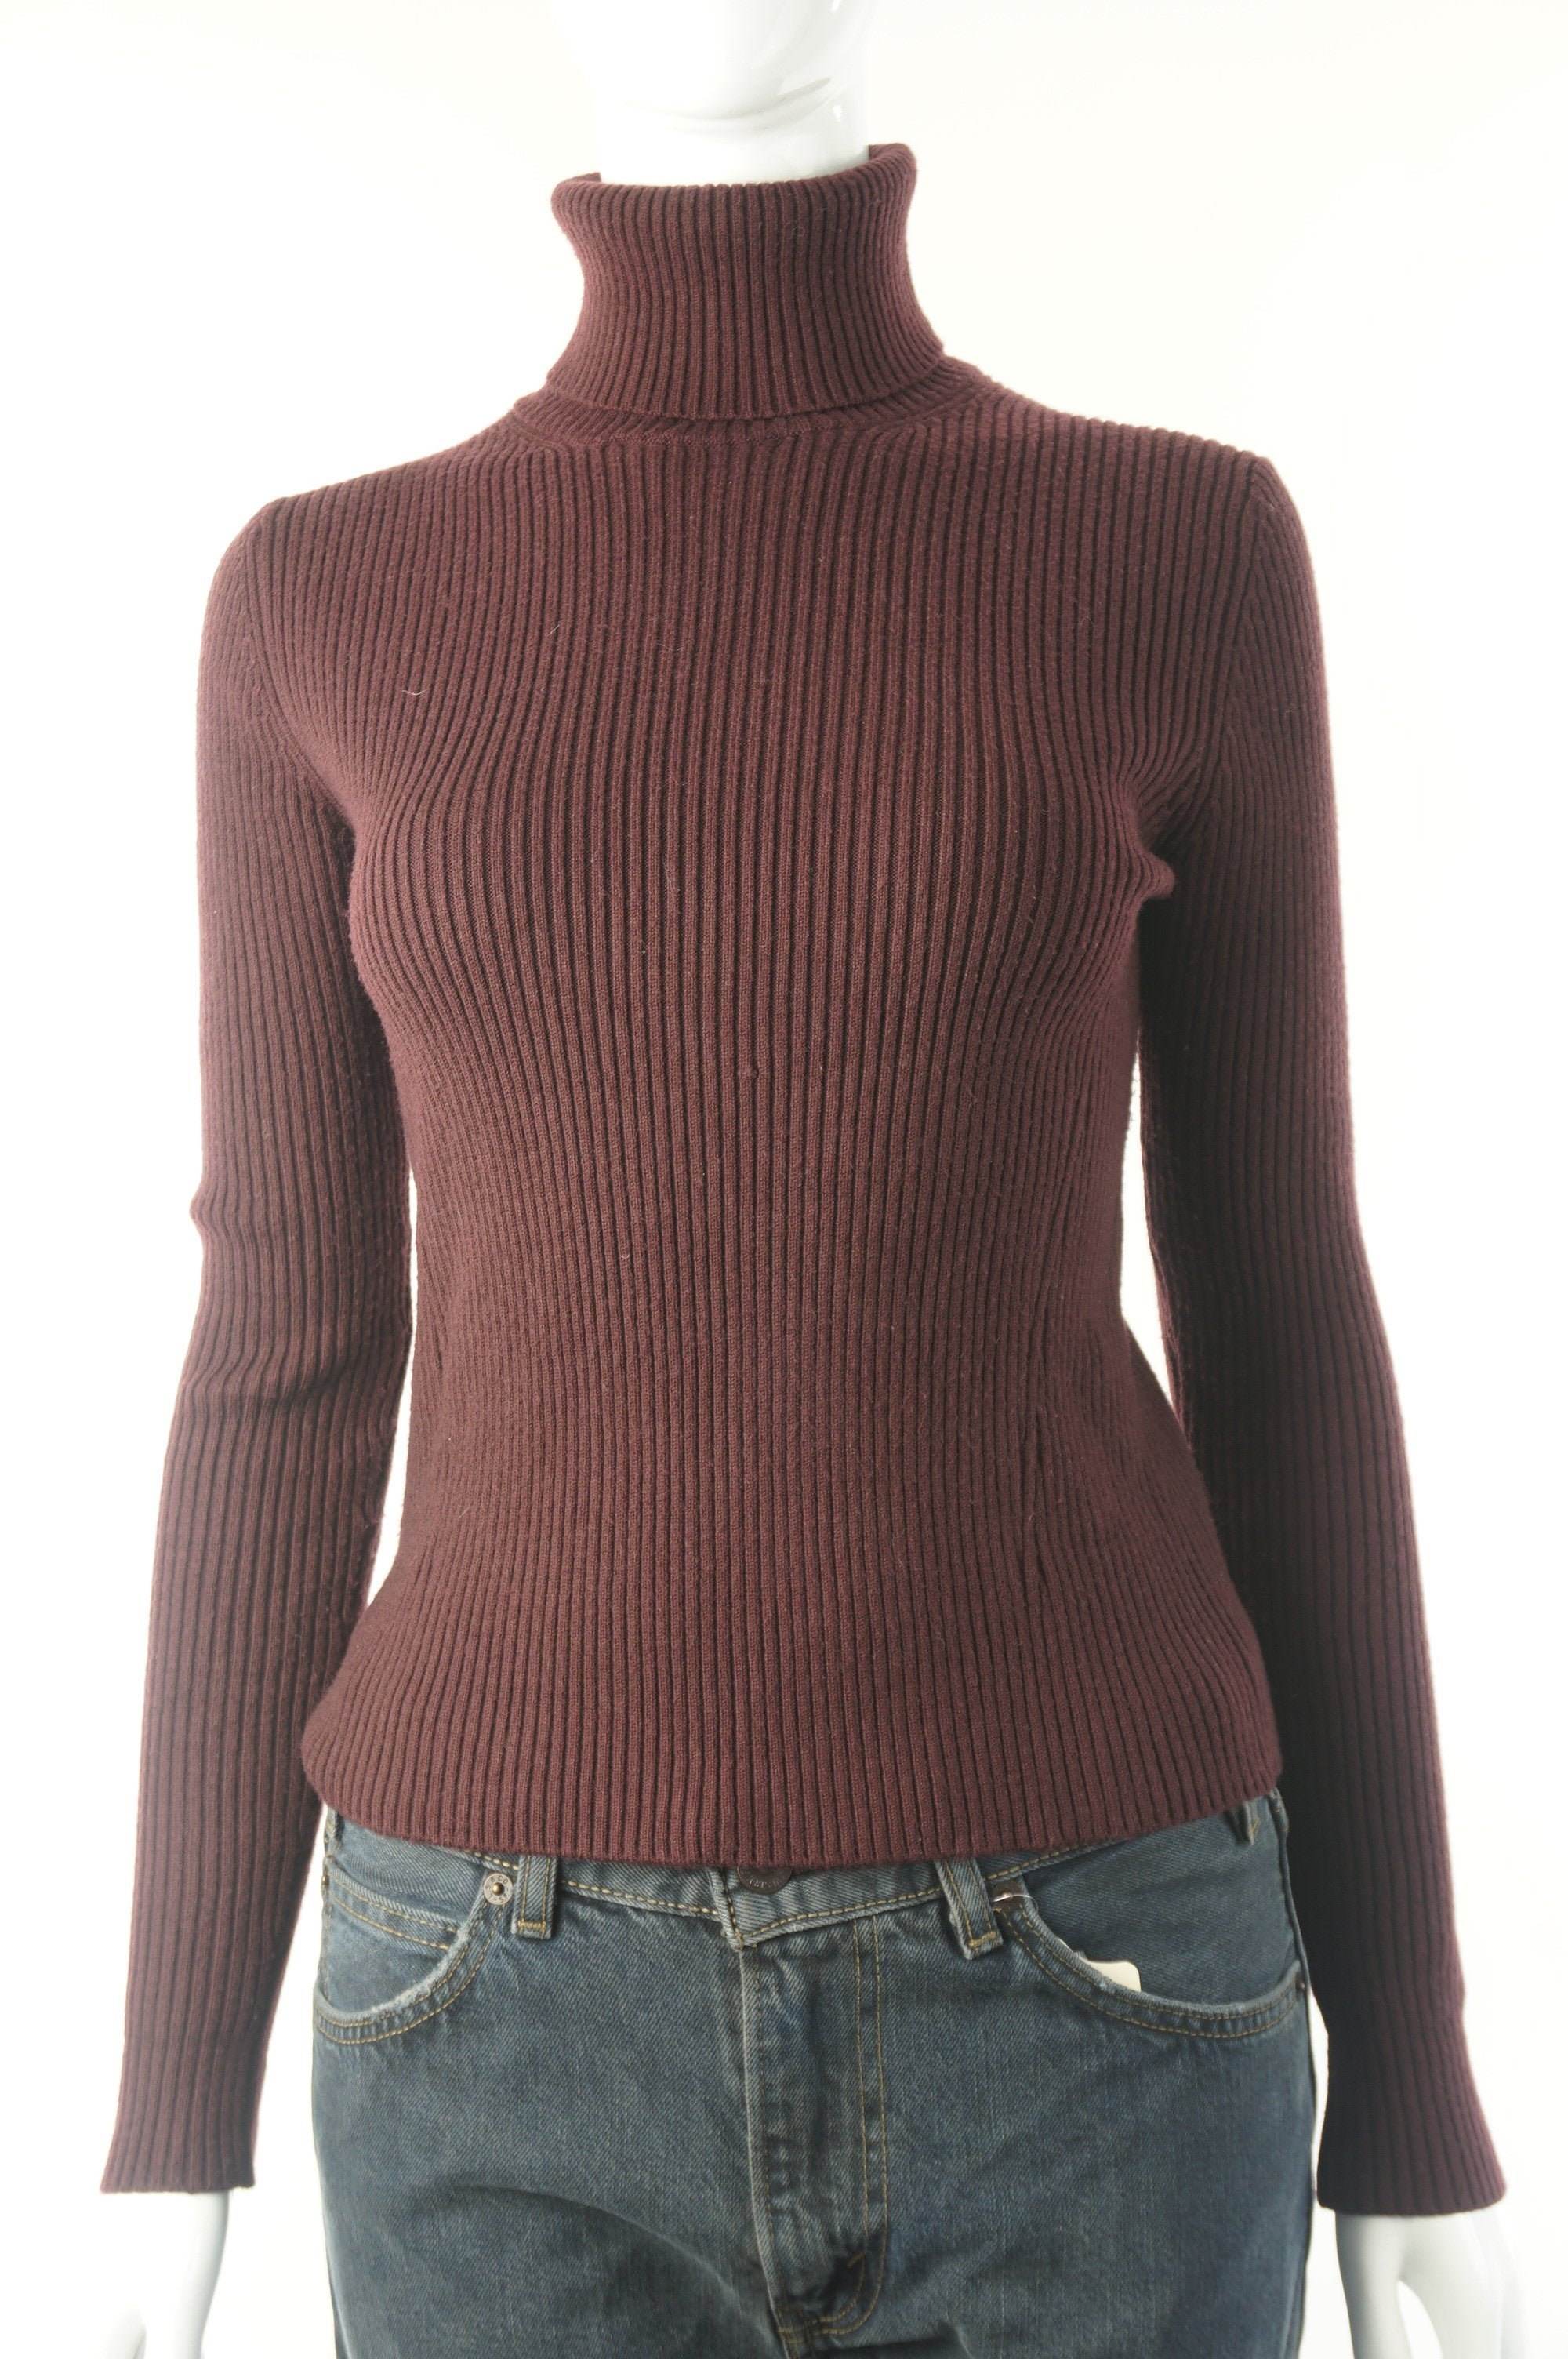 Zara Basic Burgundy Turtleneck Sweater, Long sleeve everyday turtleneck sweater. Tight fit to easily go under your jacket., Red, 46% viscose, 28% Nylon, 26% polyester, women's Tops, women's Red Tops, Zara women's Tops, women's turtleneck sweater, zara women's basic winter sweater, zara women's long sleeve turtleneck sweater,